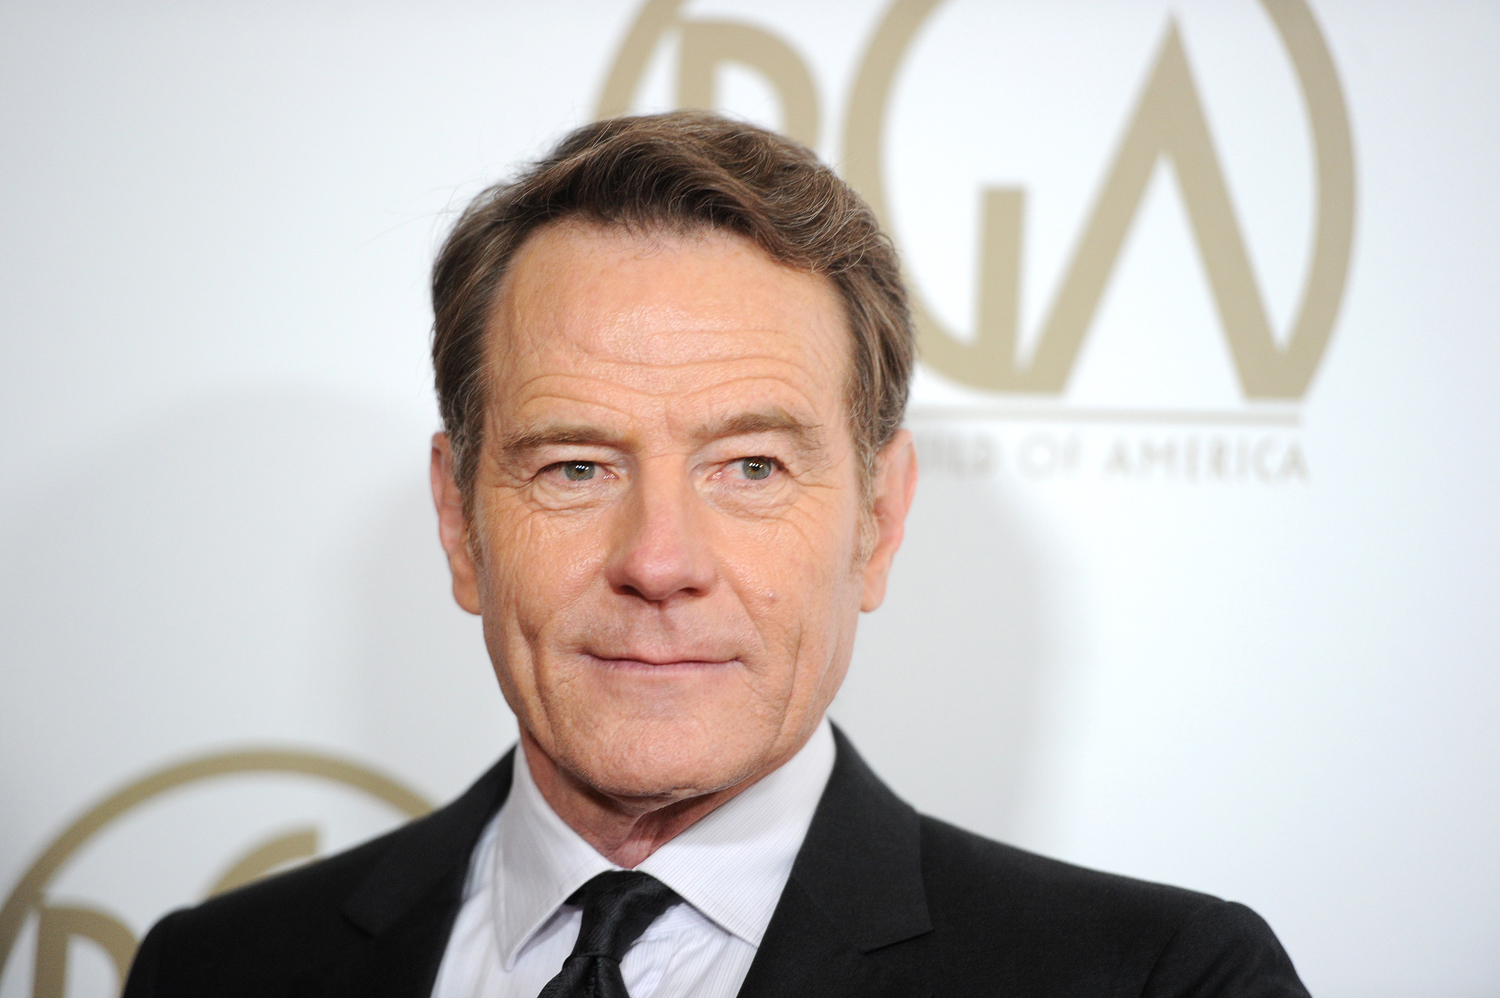 Bryan Cranston attends the 25th annual Producers Guild of America Awards, California, January 19, 2014 at the Beverly Hilton Hotel in Beverly Hills, California.